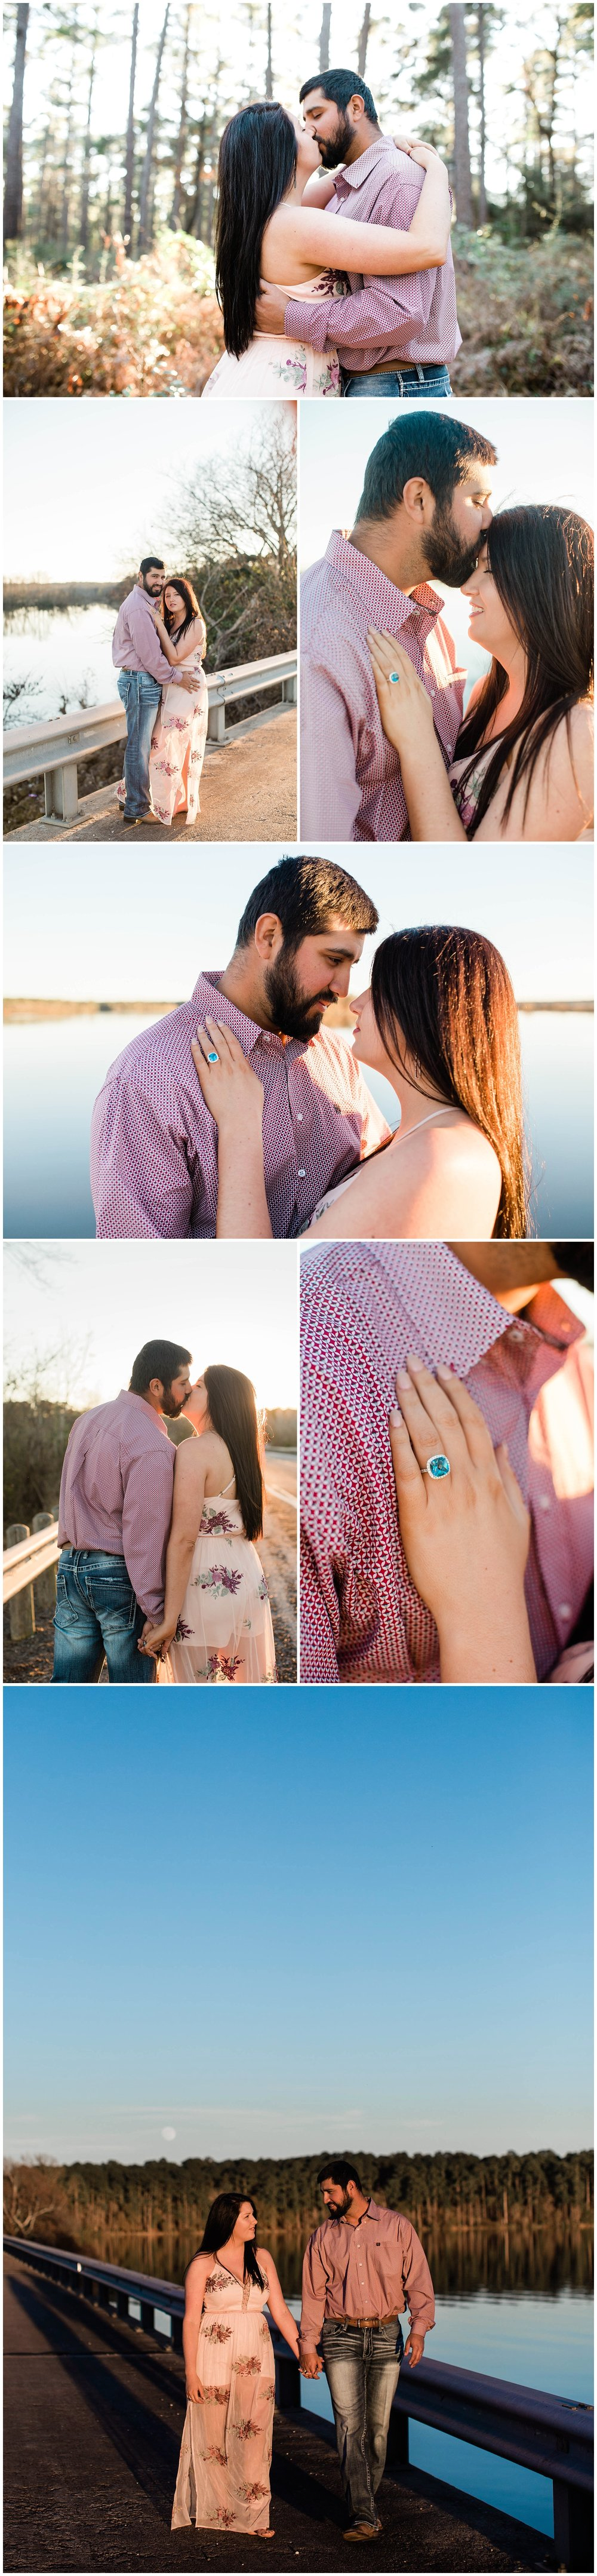 Sam_Houston_National_Forest_Engagement_Session_Kristina_Ross_Photography_0006.jpg